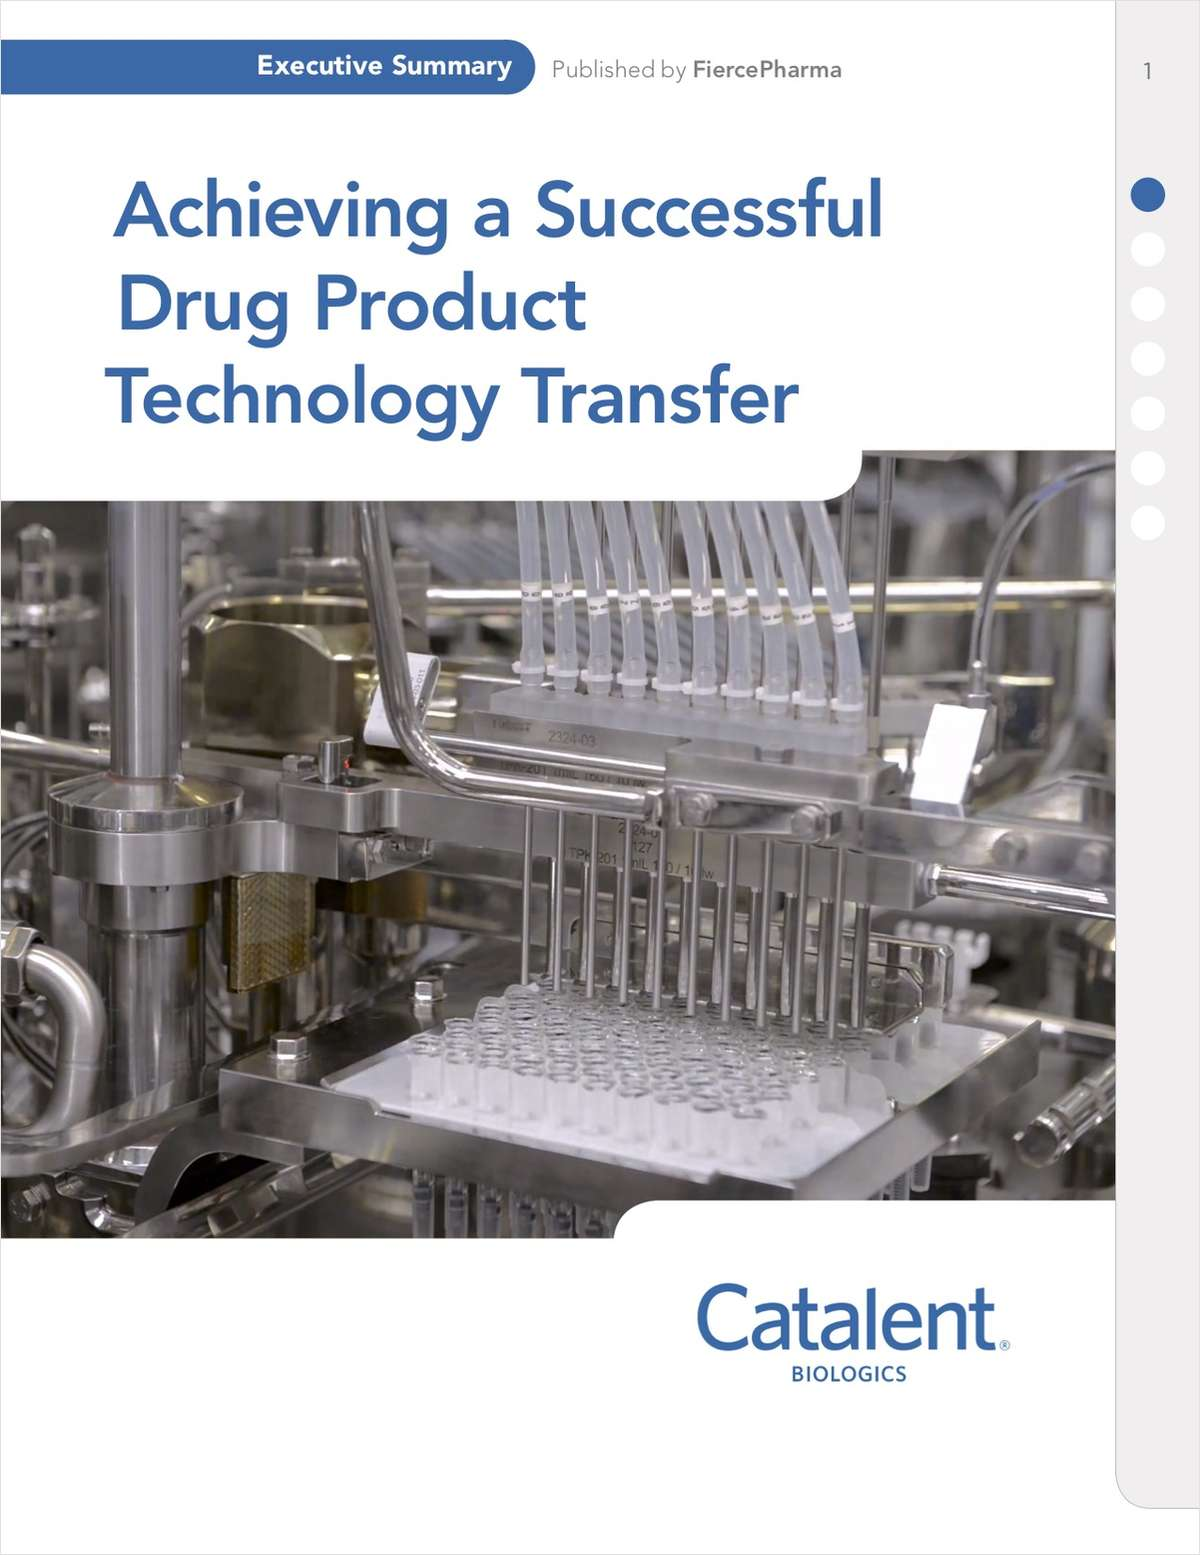 Achieving a Successful Drug Product Technology Transfer